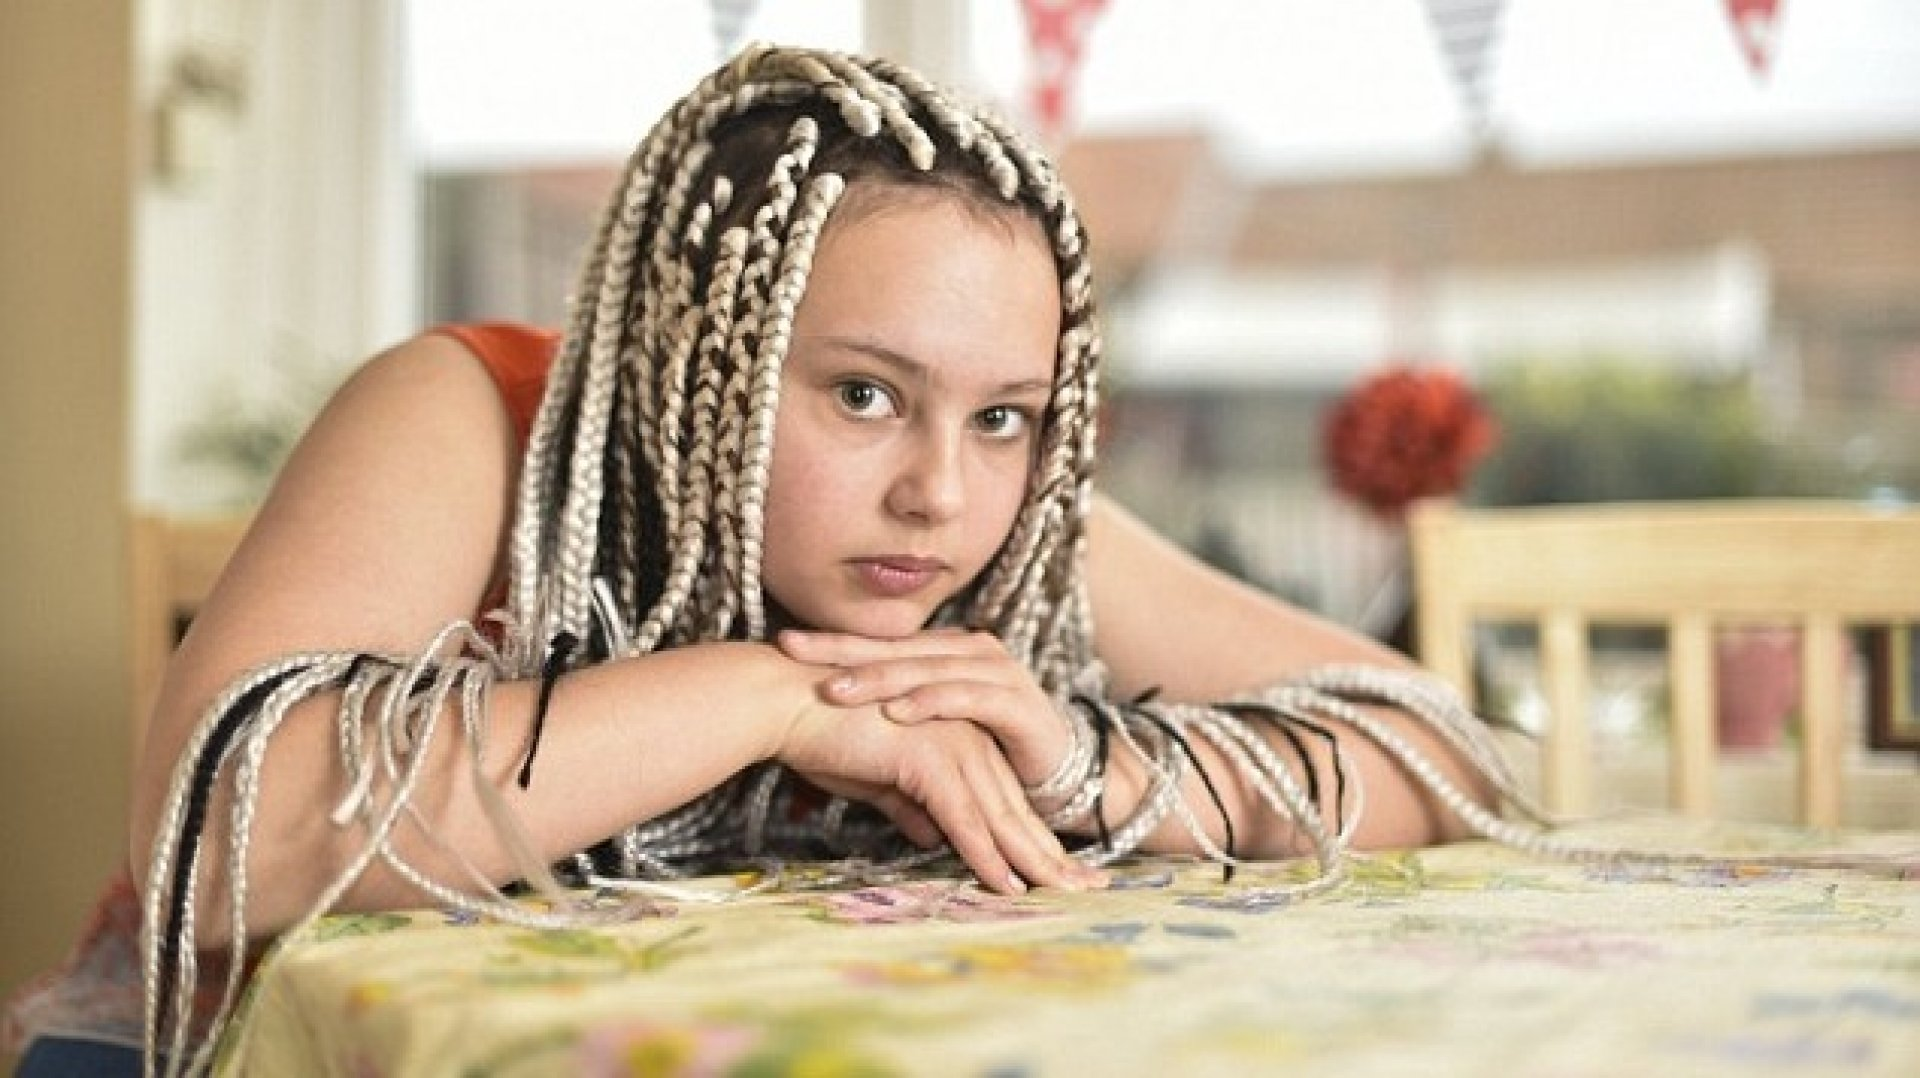 14-year-old girl was sent home after getting a dreadlock